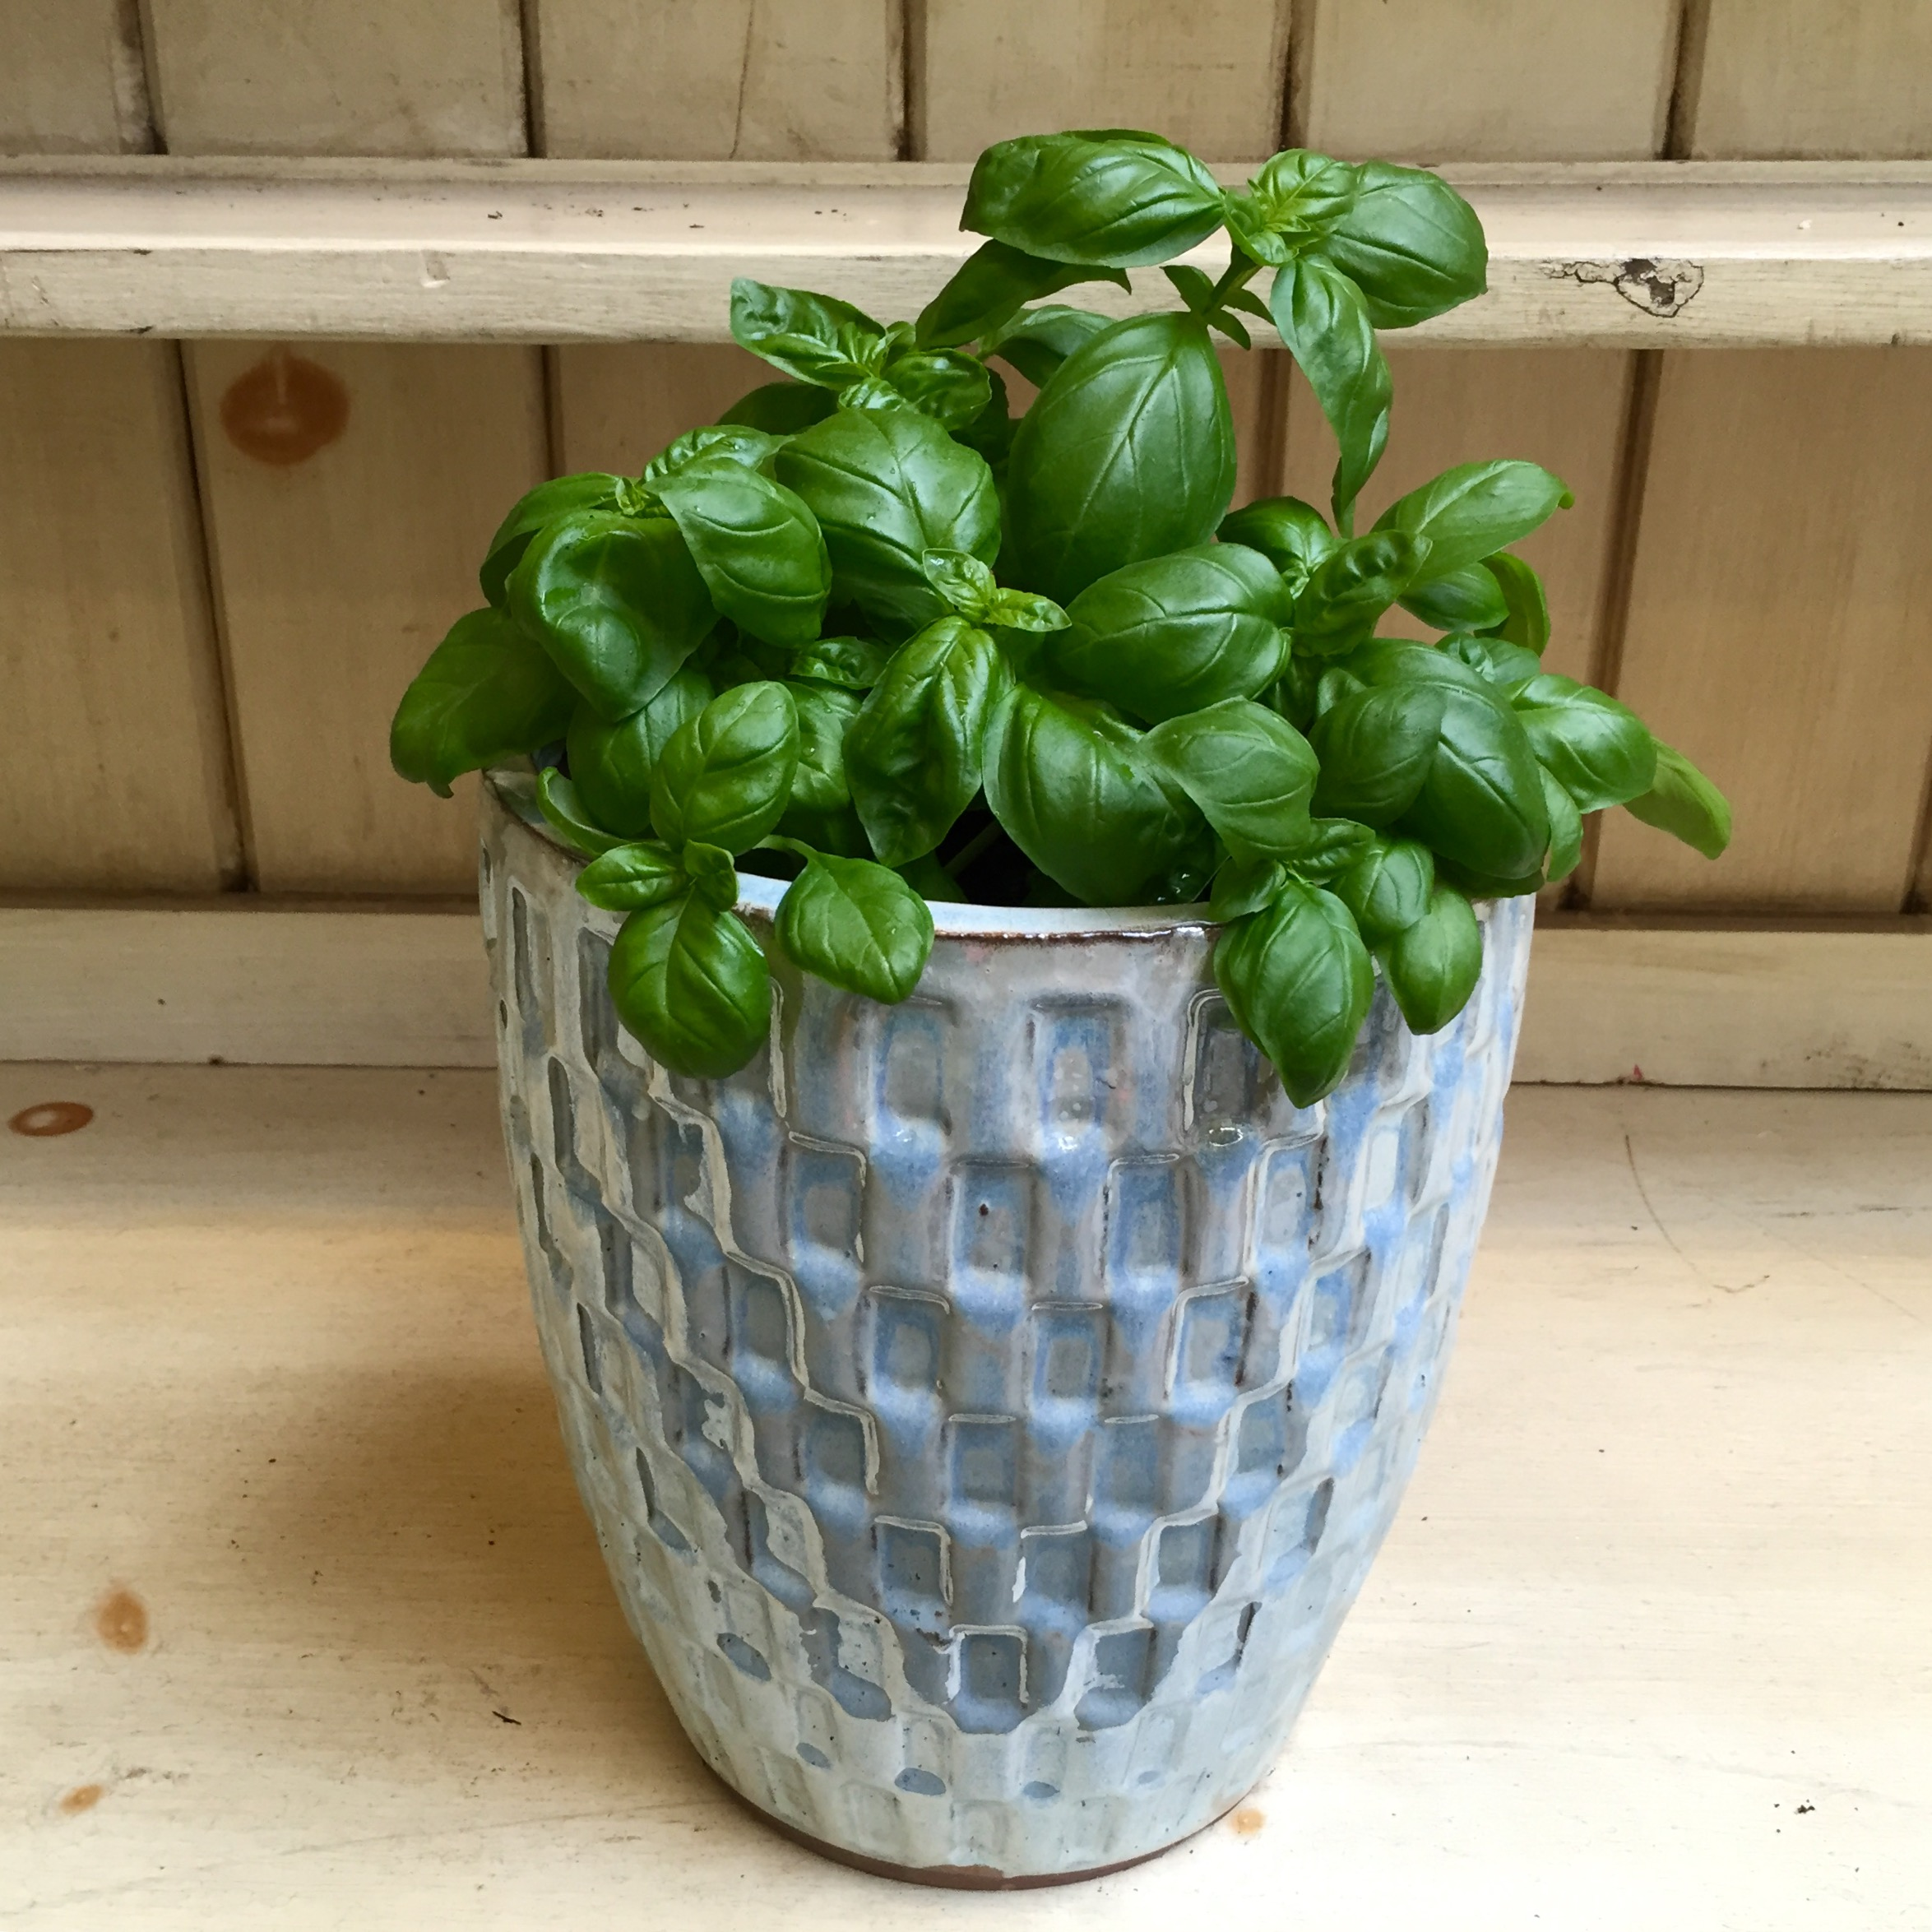 Pictured: Genovese Basil